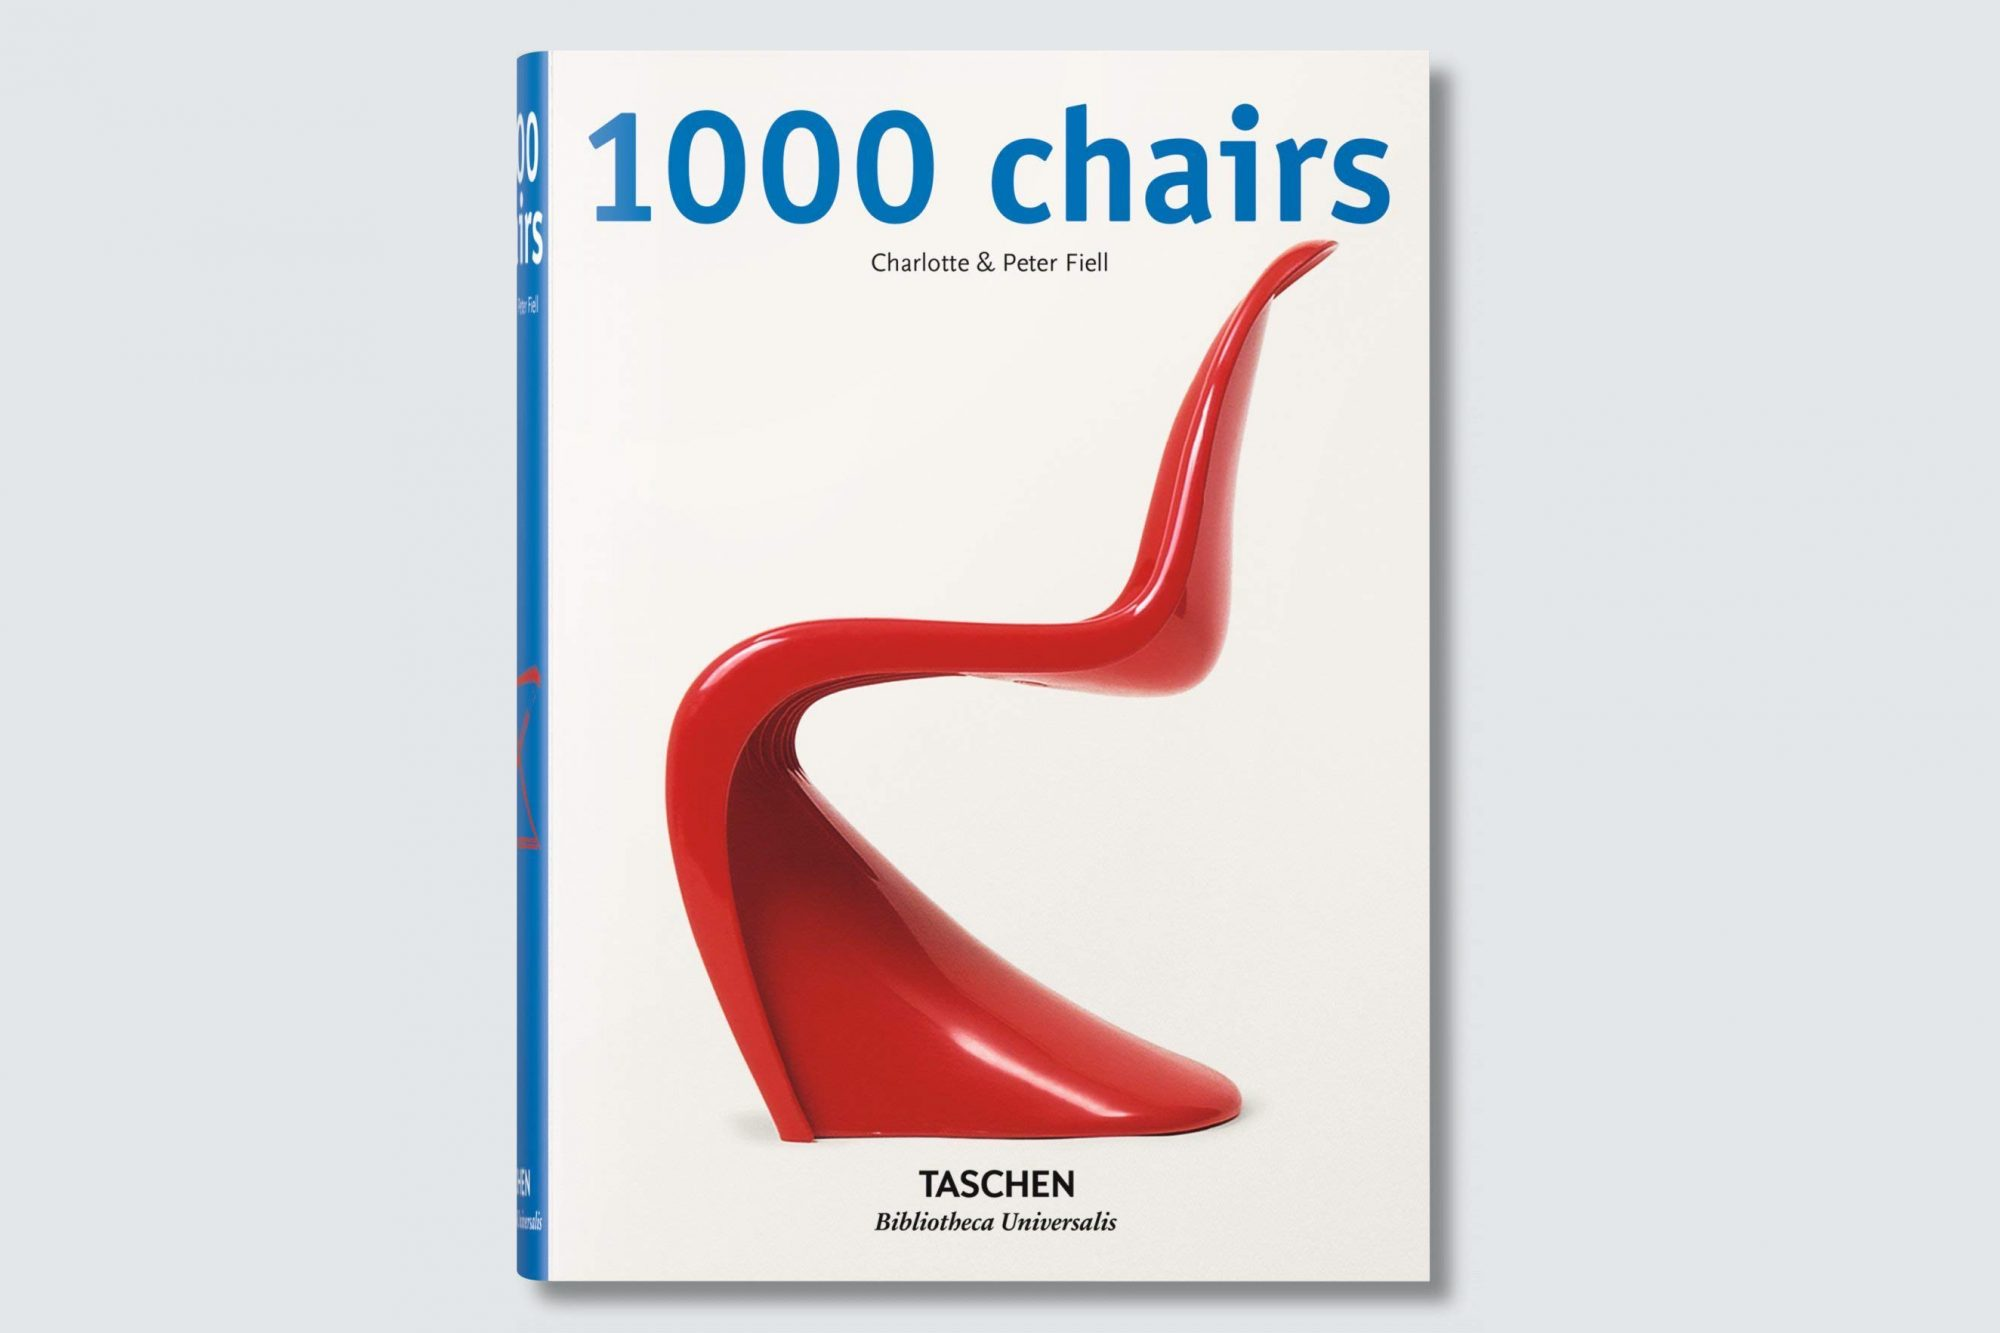 1000 Chairs (First Edition) by Charlotte & Peter Fiell